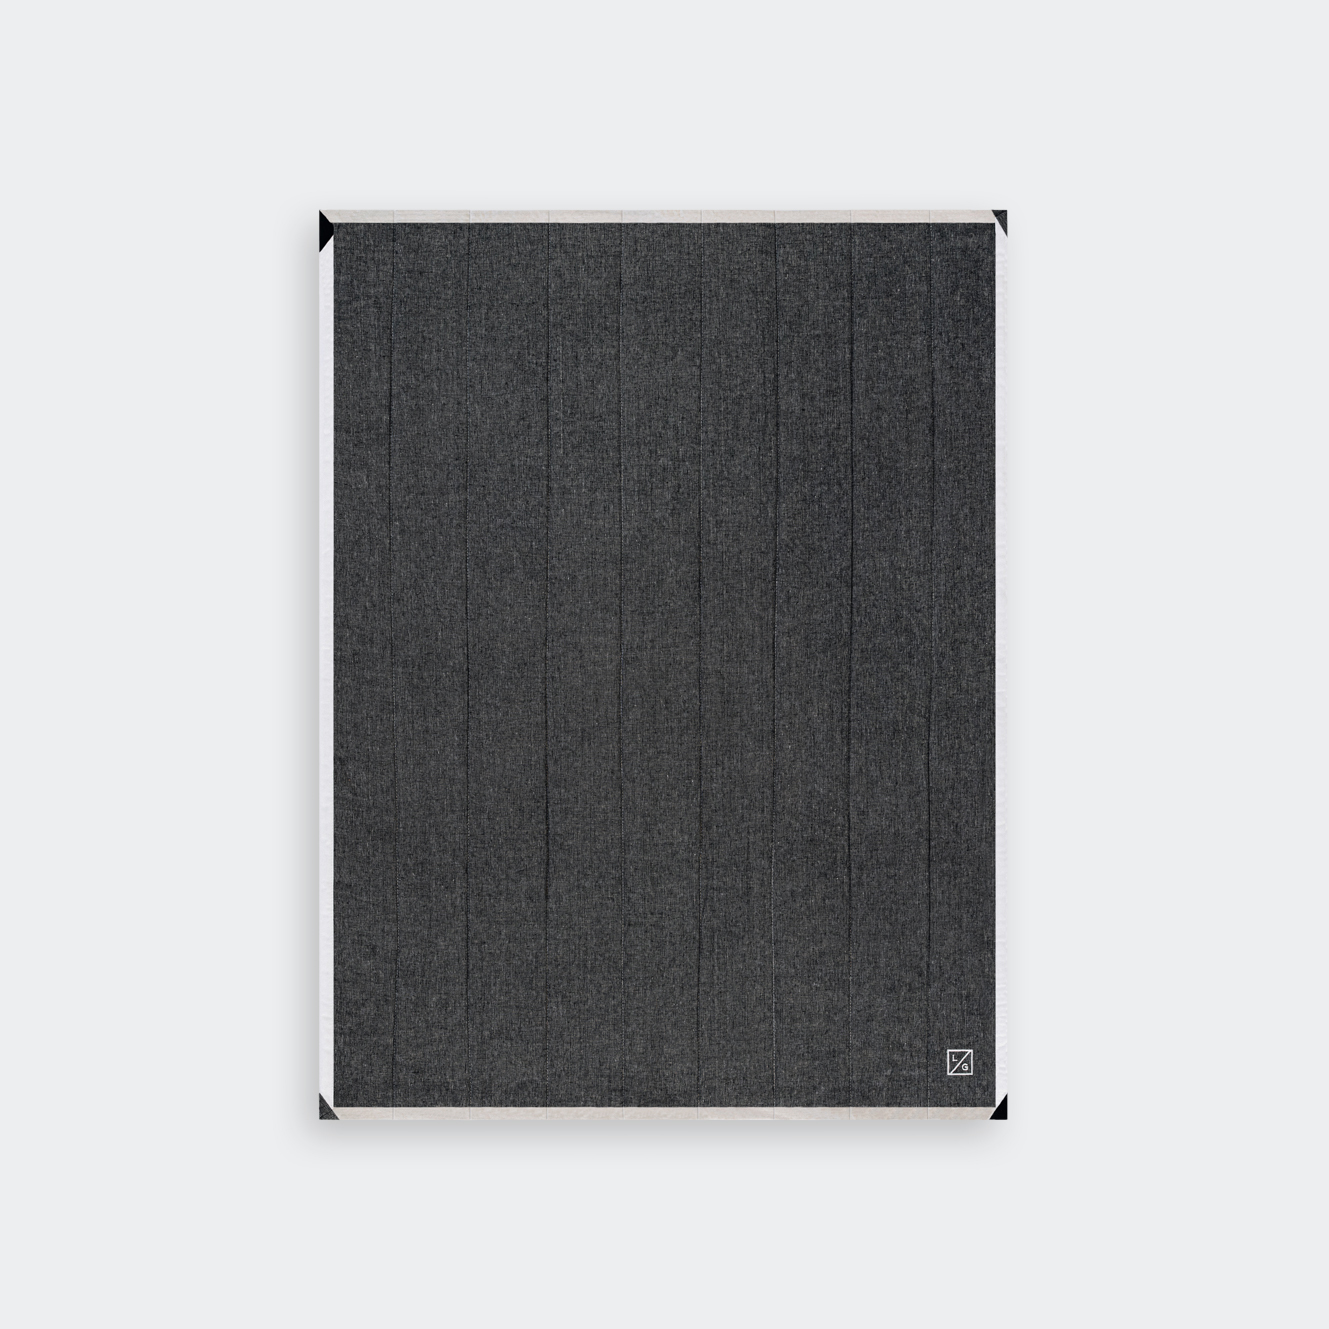 Little quilt no. 1 black